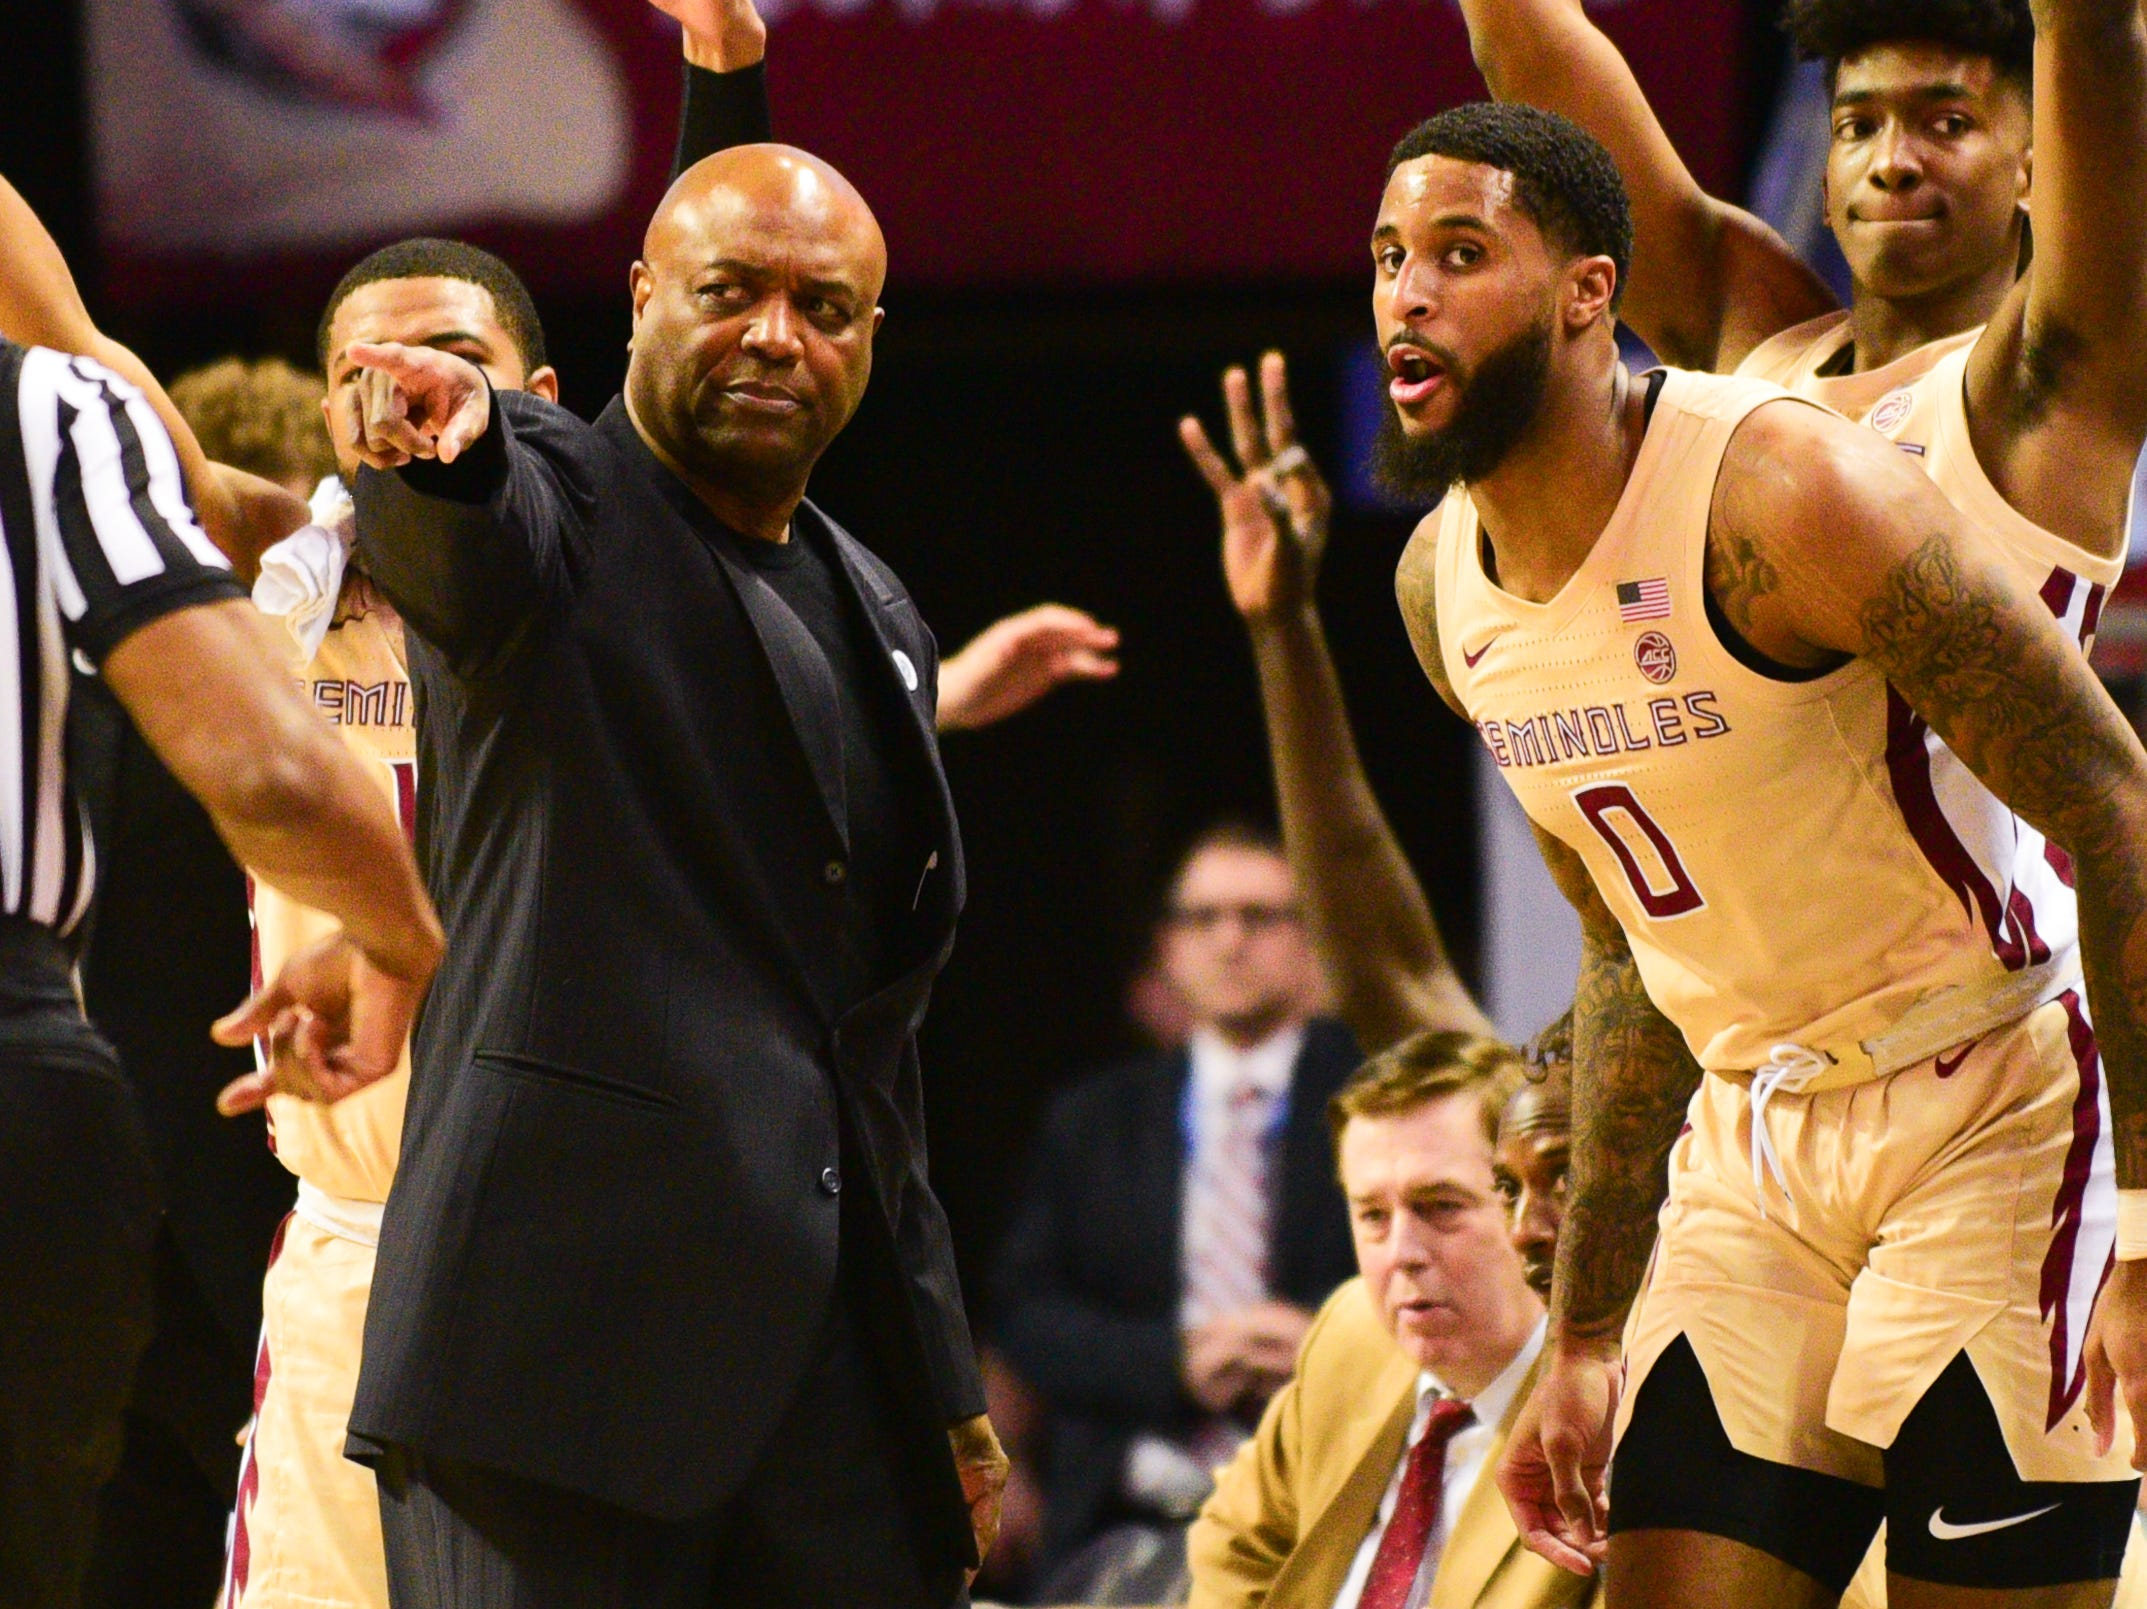 Florida State head coach Leonard Hamilton, left, directs redshirt senior forward Phil Cofer (0) back to the court during the first half of the ACC Championship game at the Spectrum Center on Saturday.